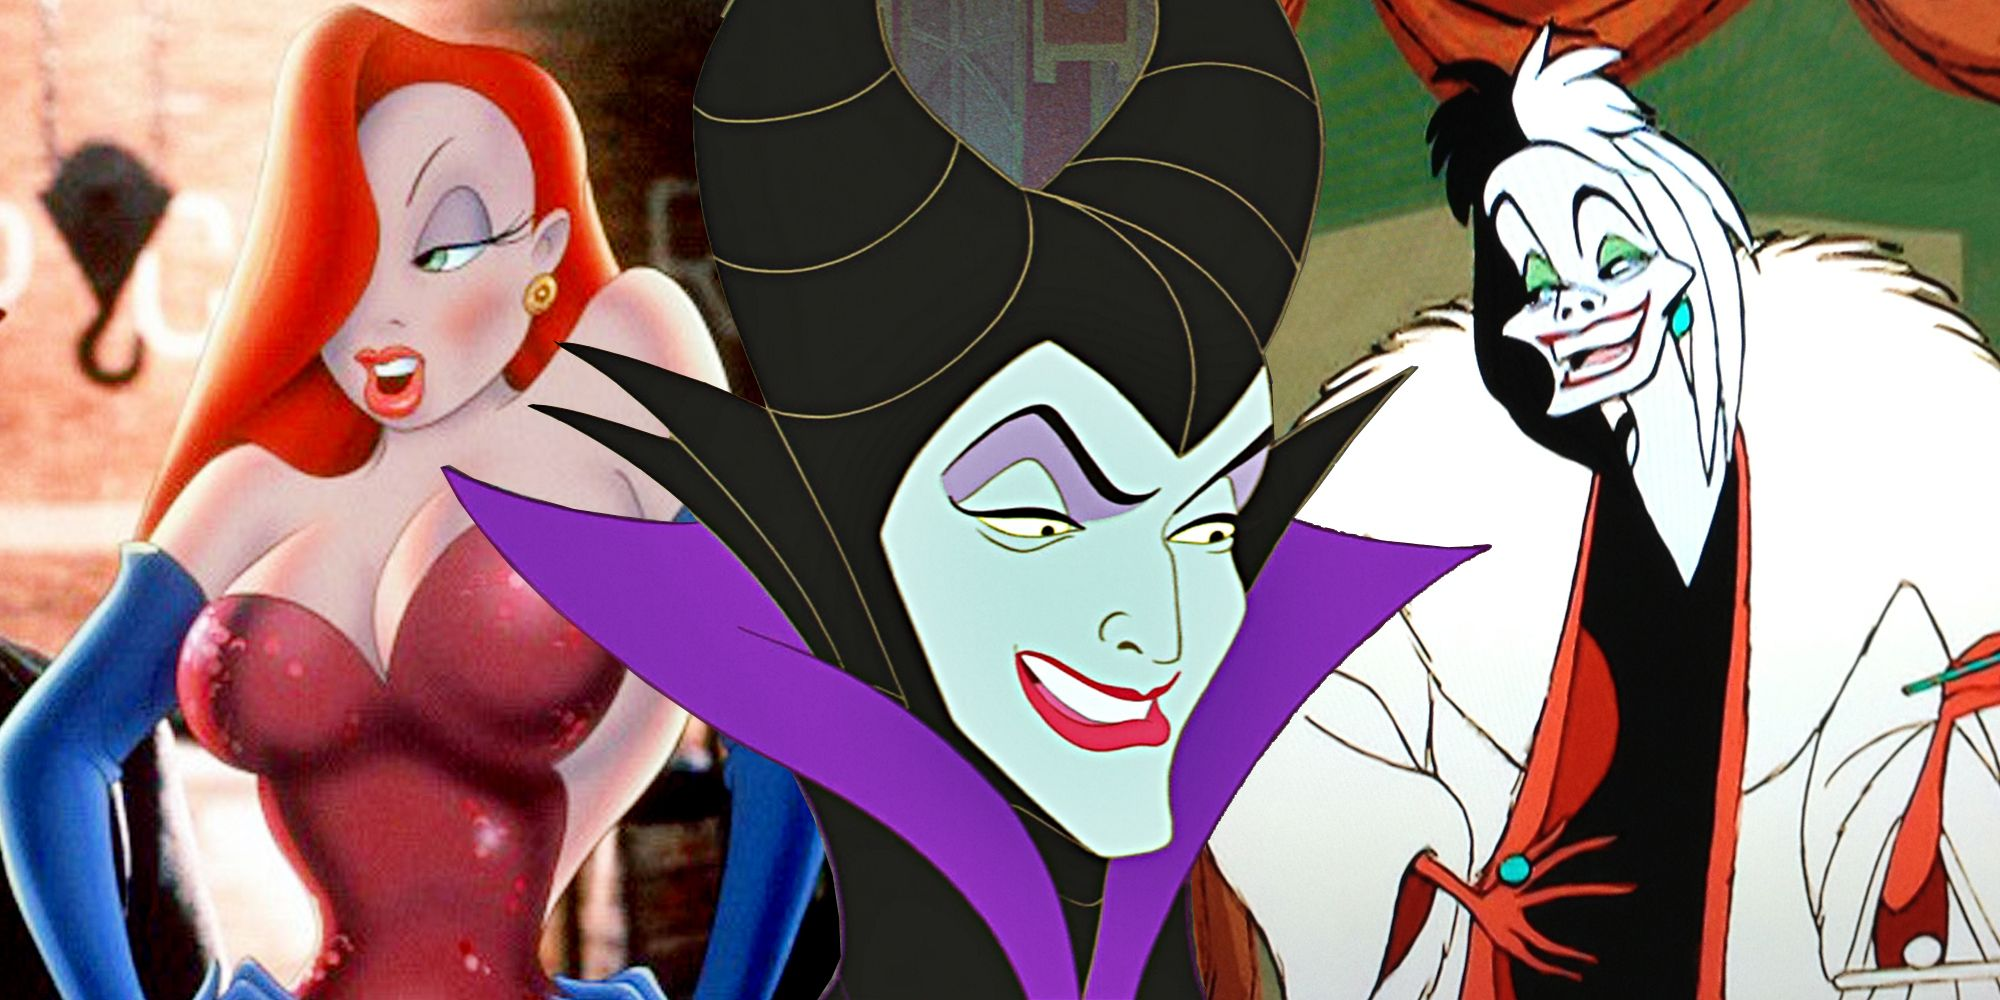 The 15 Most Stylish Cartoon Characters Of All Time